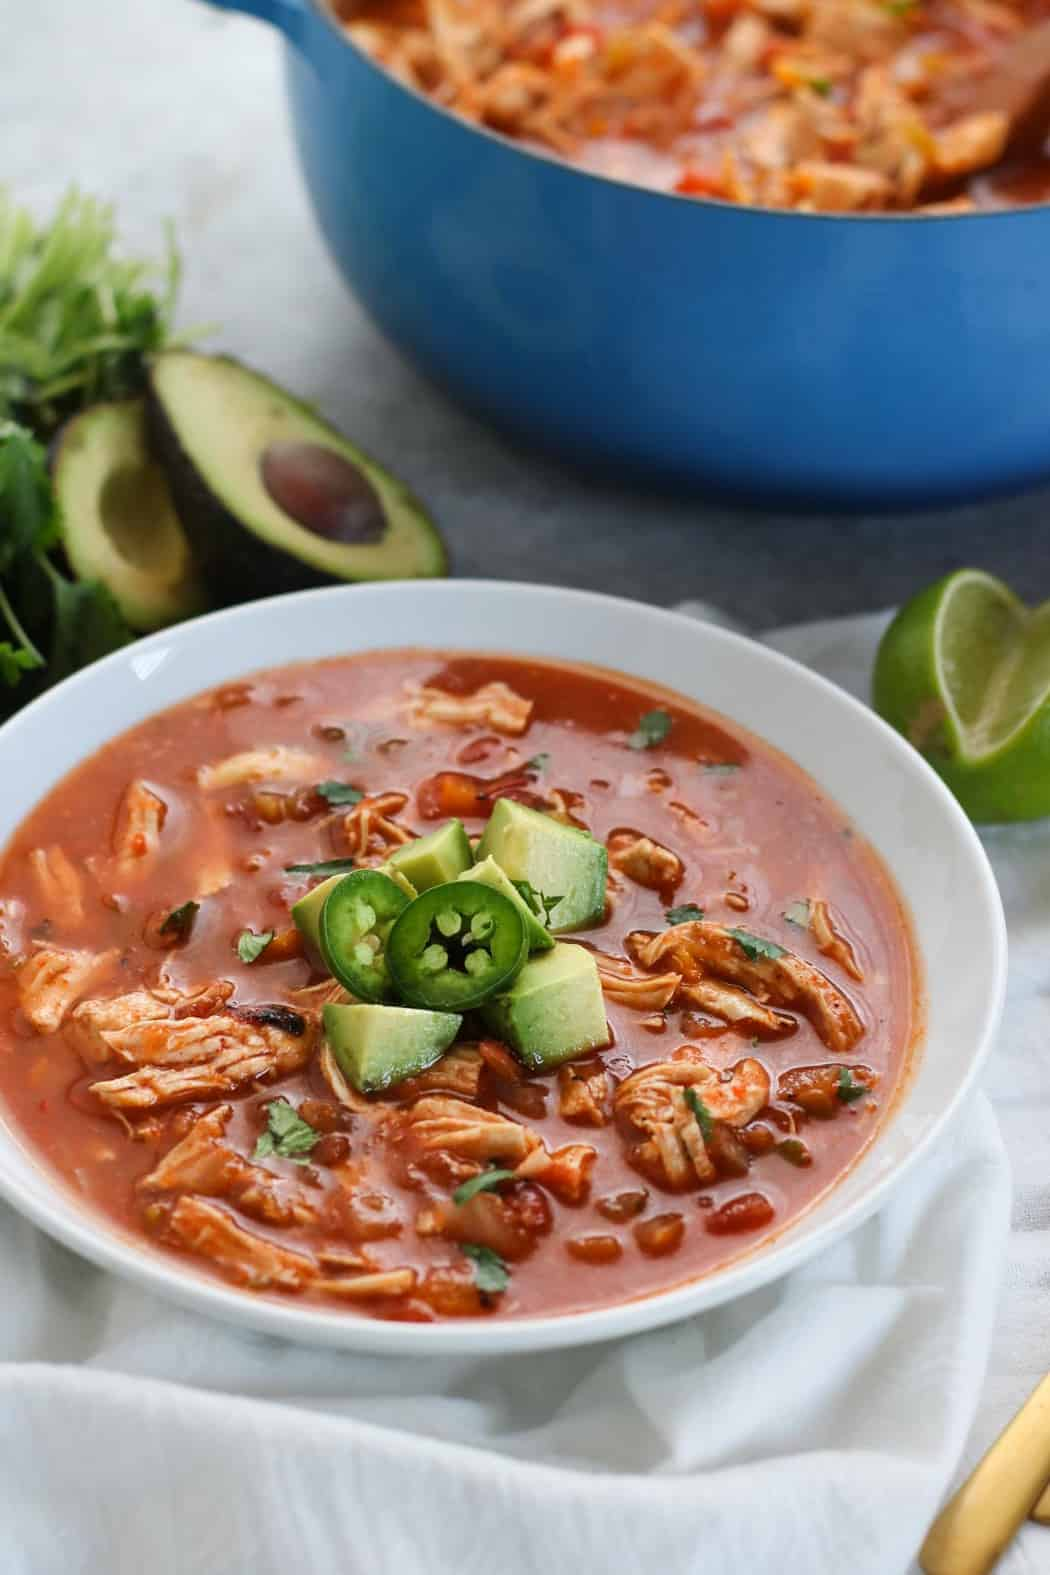 Chicken Torilla-less Soup   30 Whole30 Soups, Stews & Chilis   healthy soup recipes   whole30 meal ideas   whole30 recipes   whole30 chili recipes    The Real Food Dietitians #whole30soups #whole30recipe #whole30meals